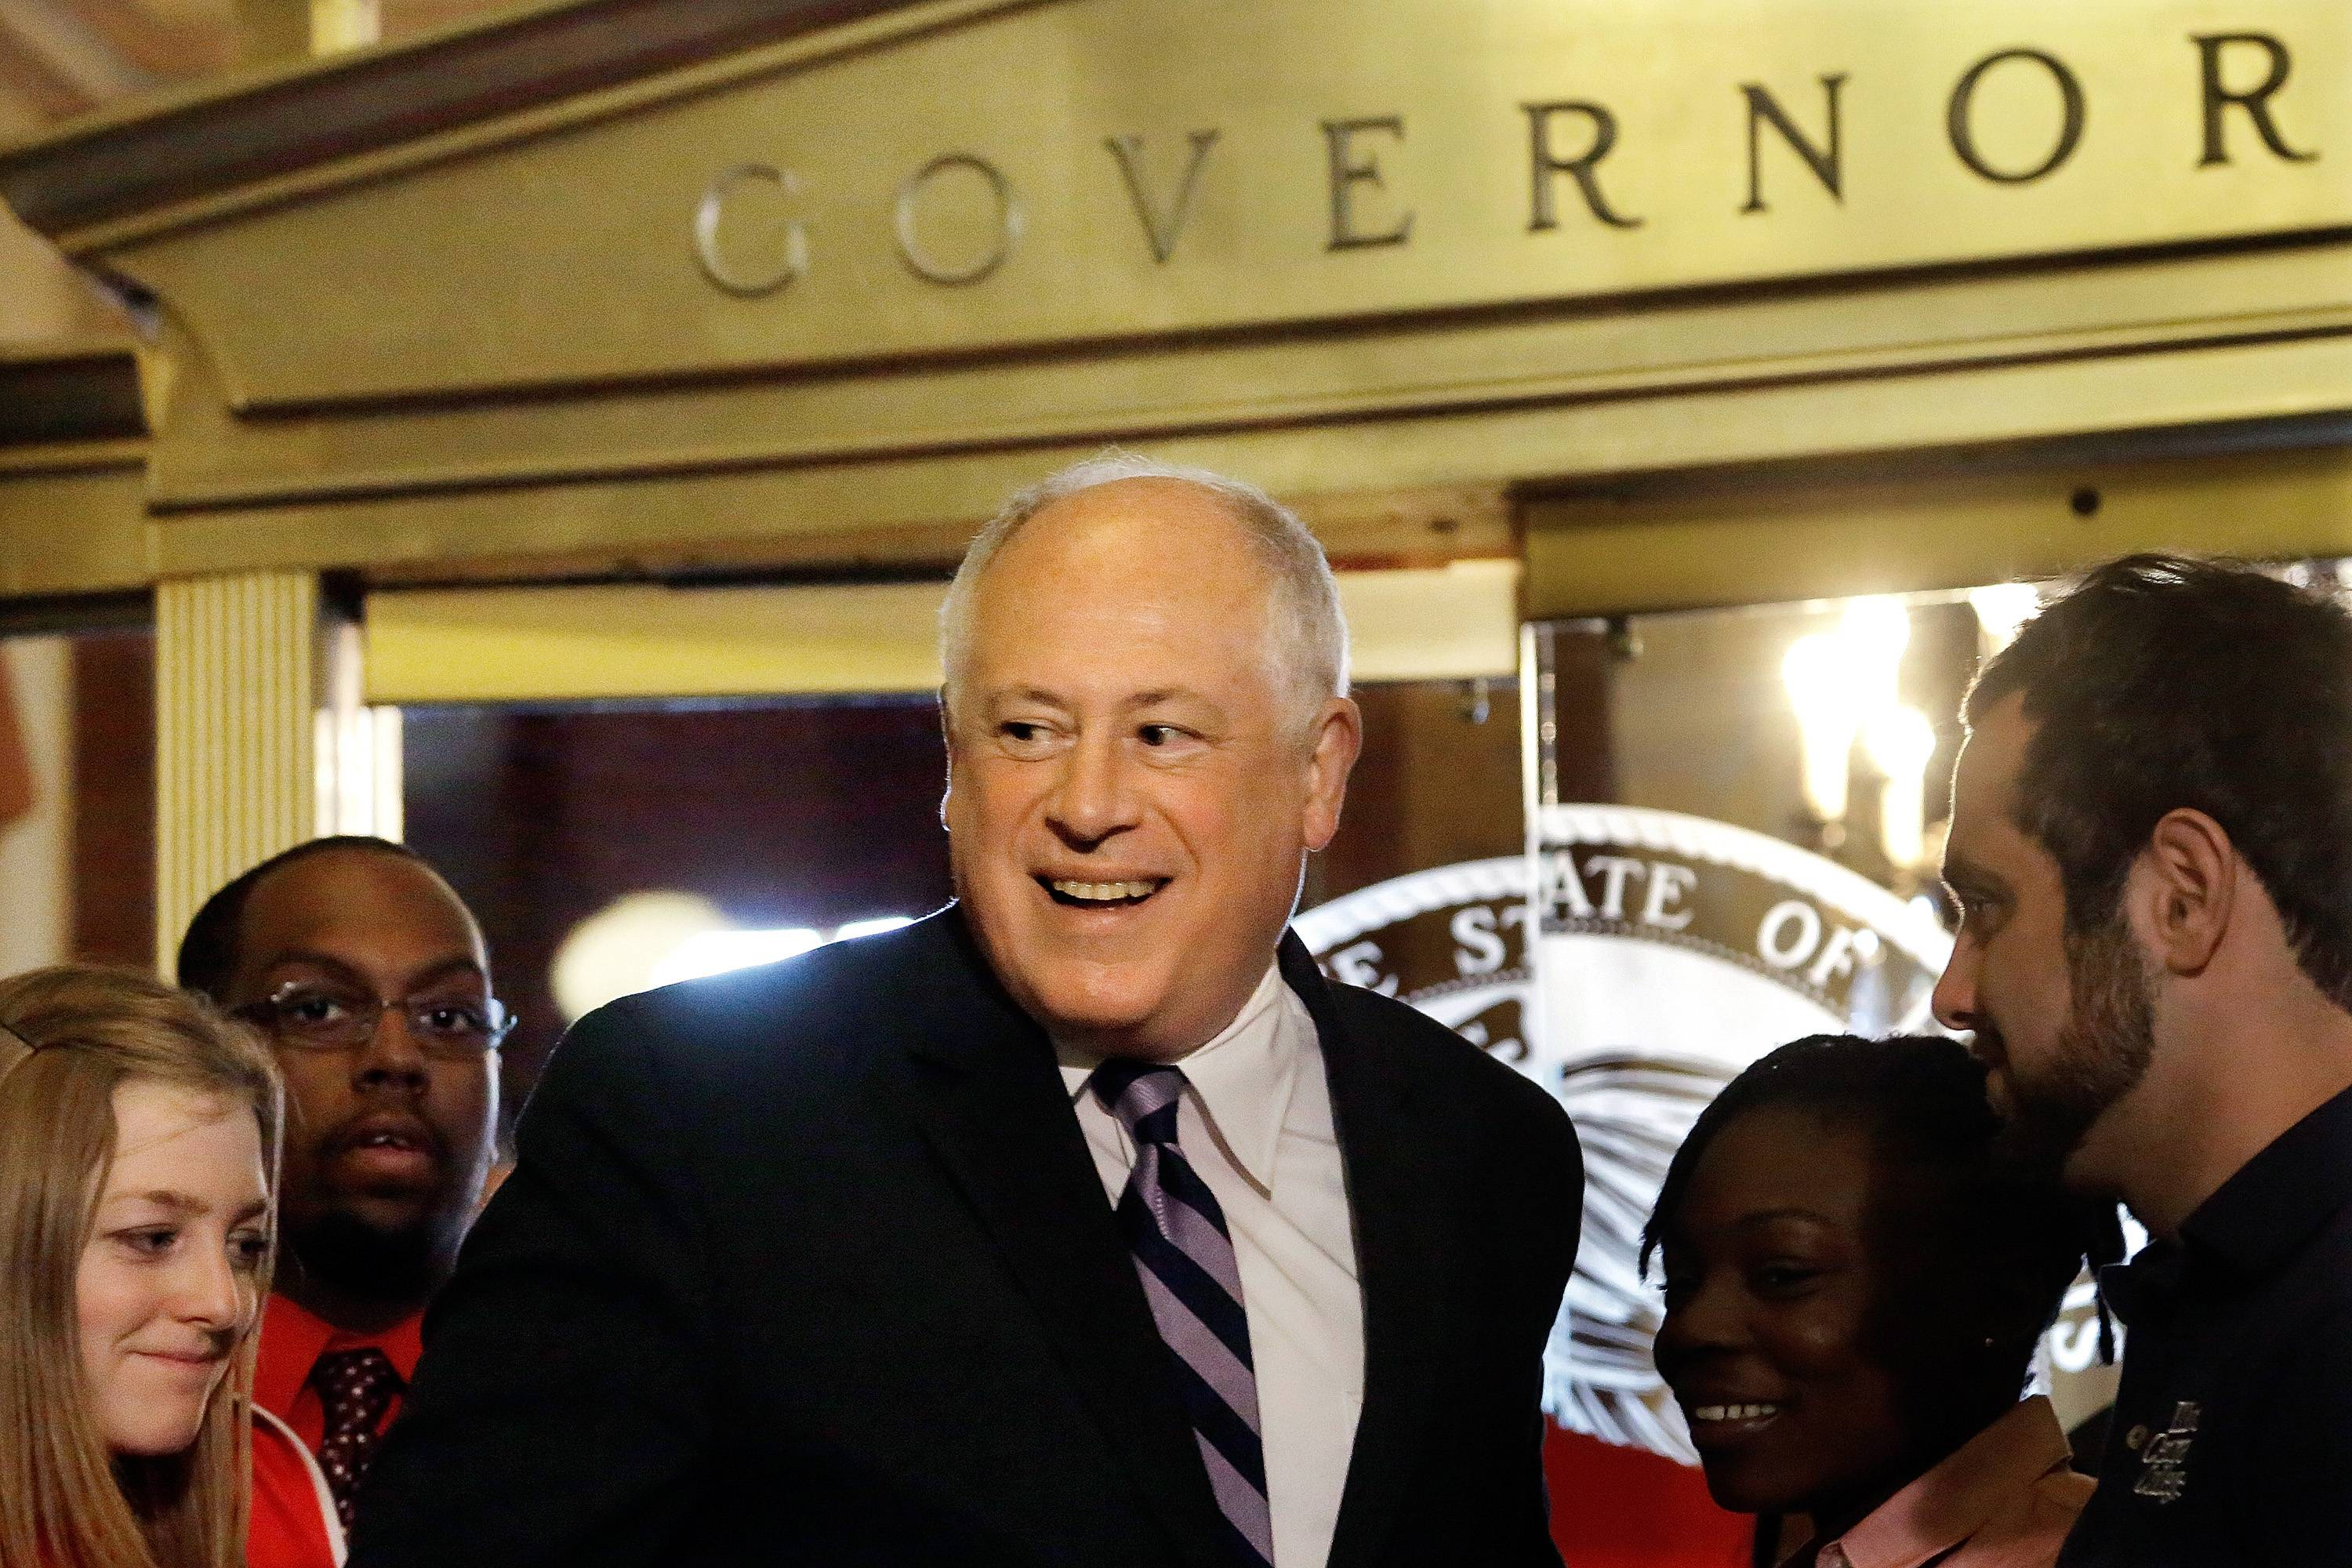 Gov. Pat Quinn is running for re-election against Republican Bruce Rauner.